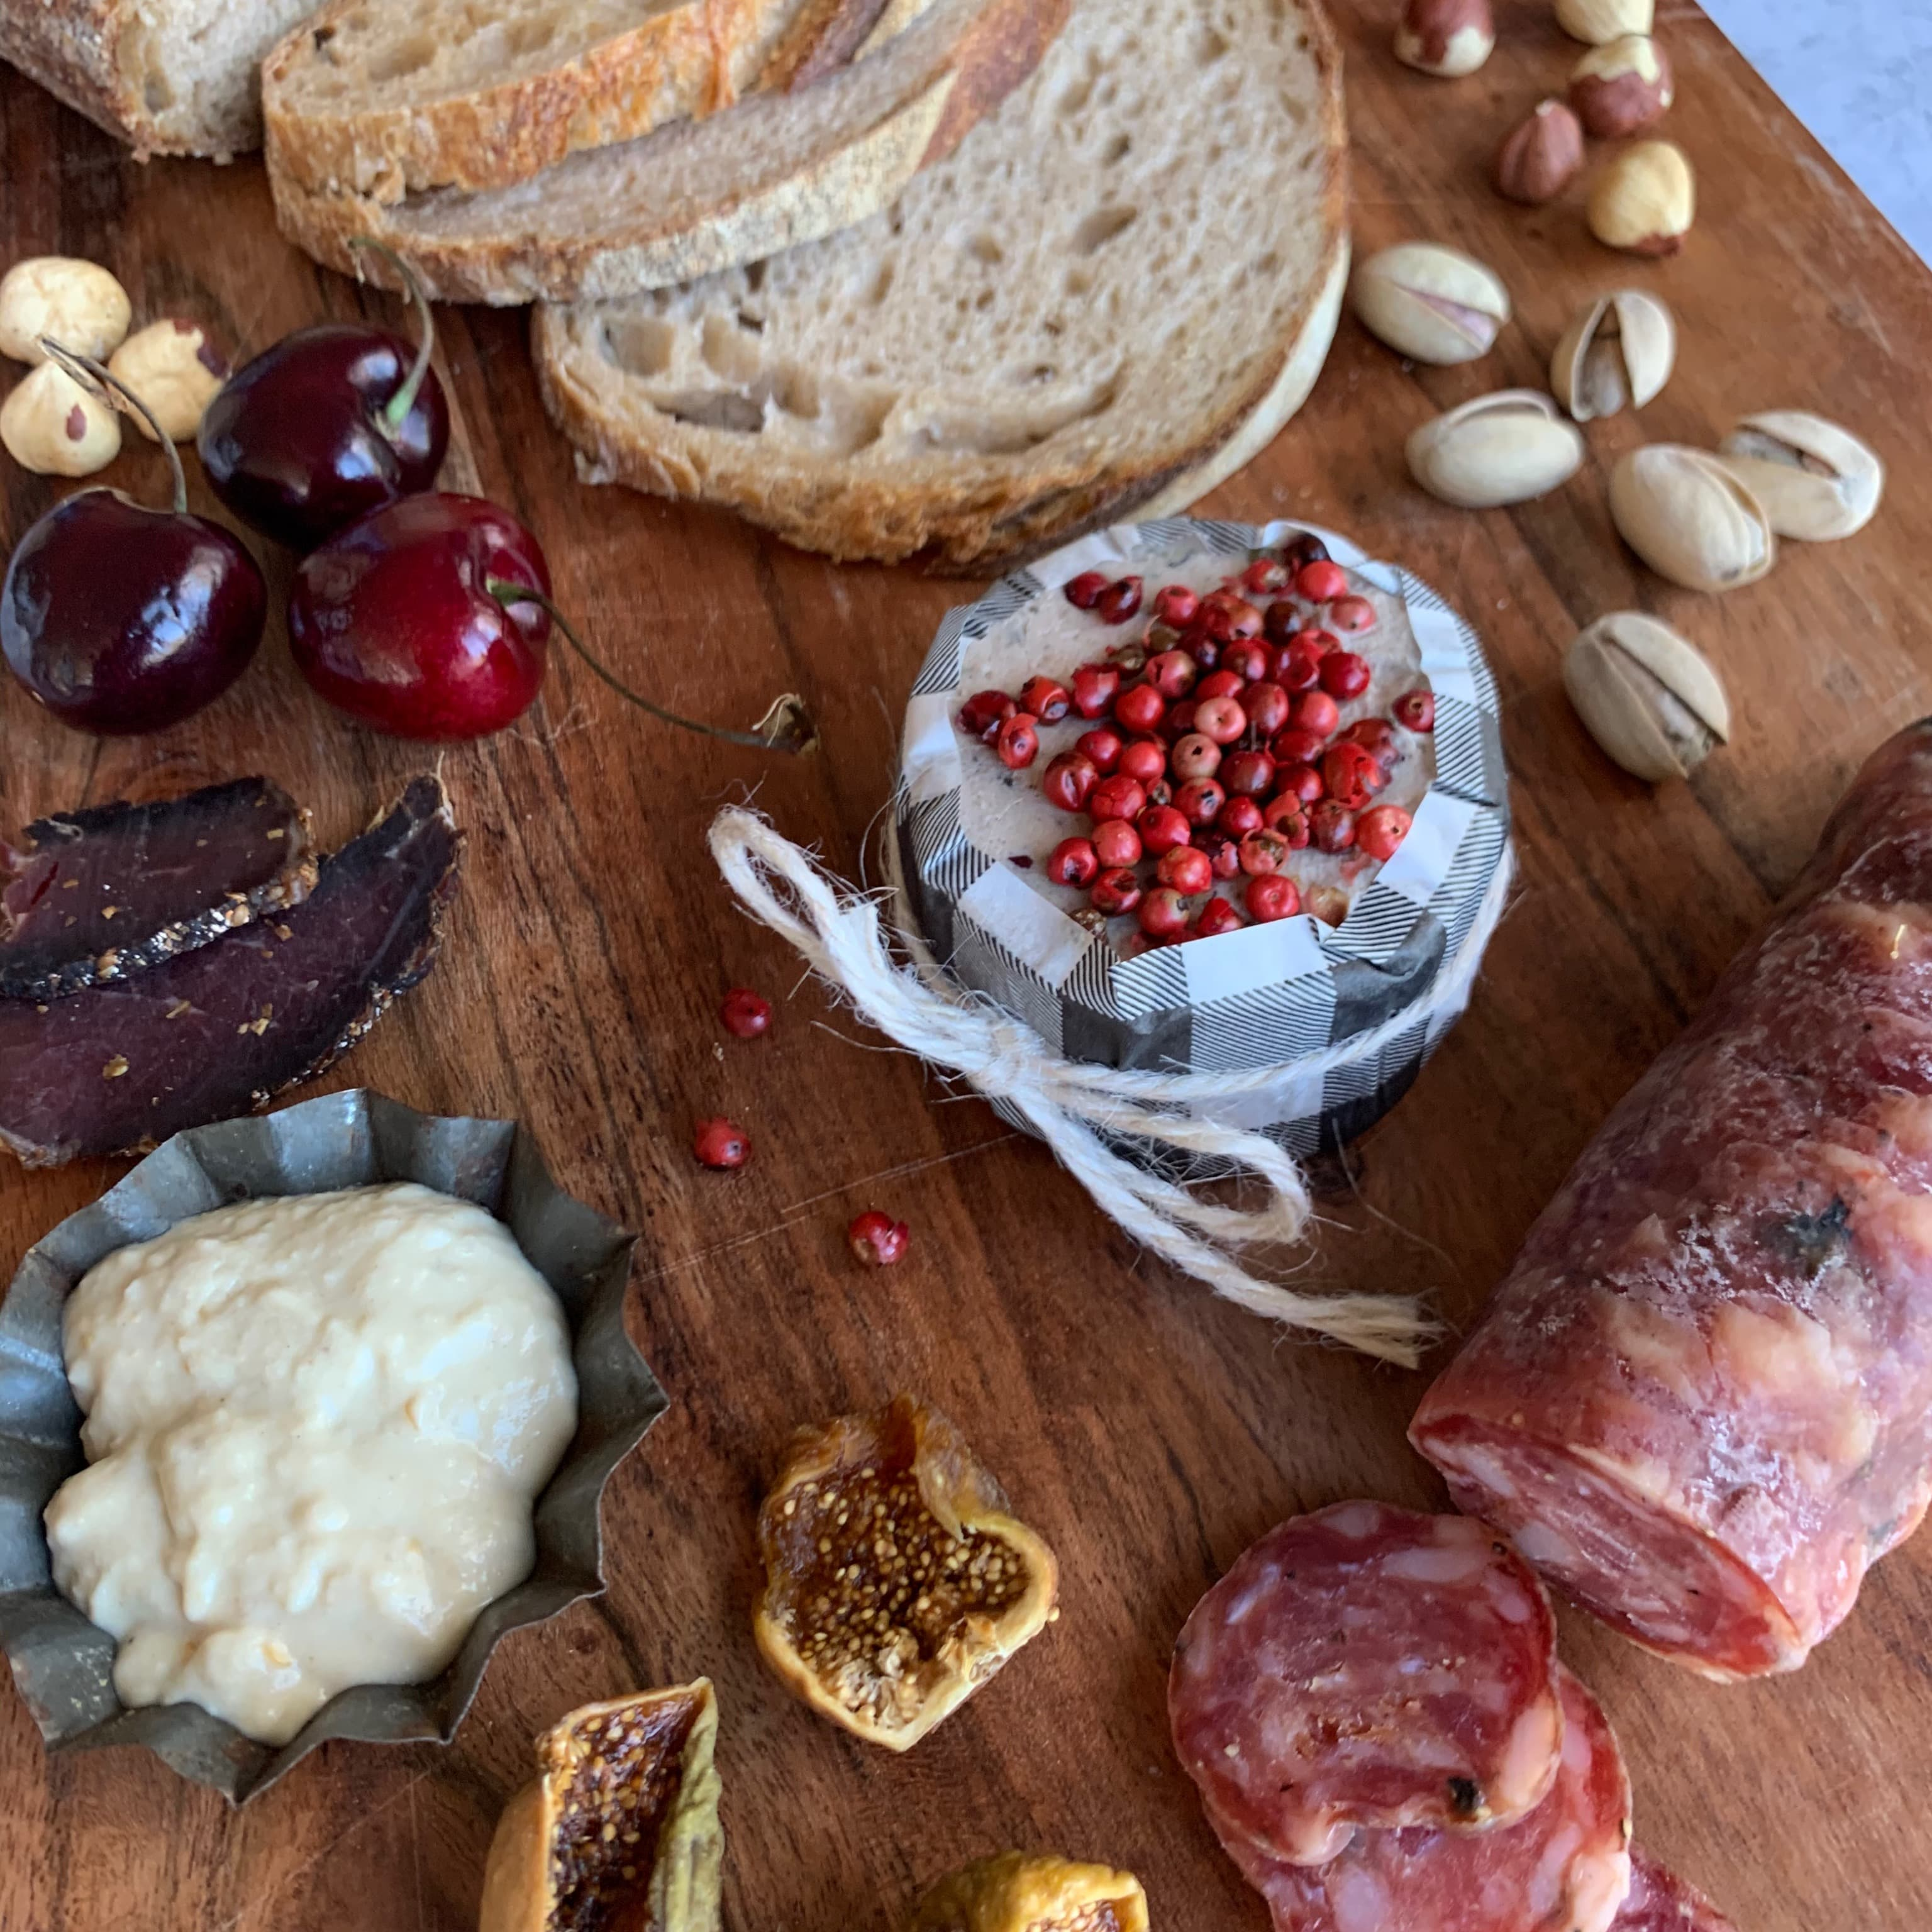 meat, pate, dips and bread on wooden chopping board